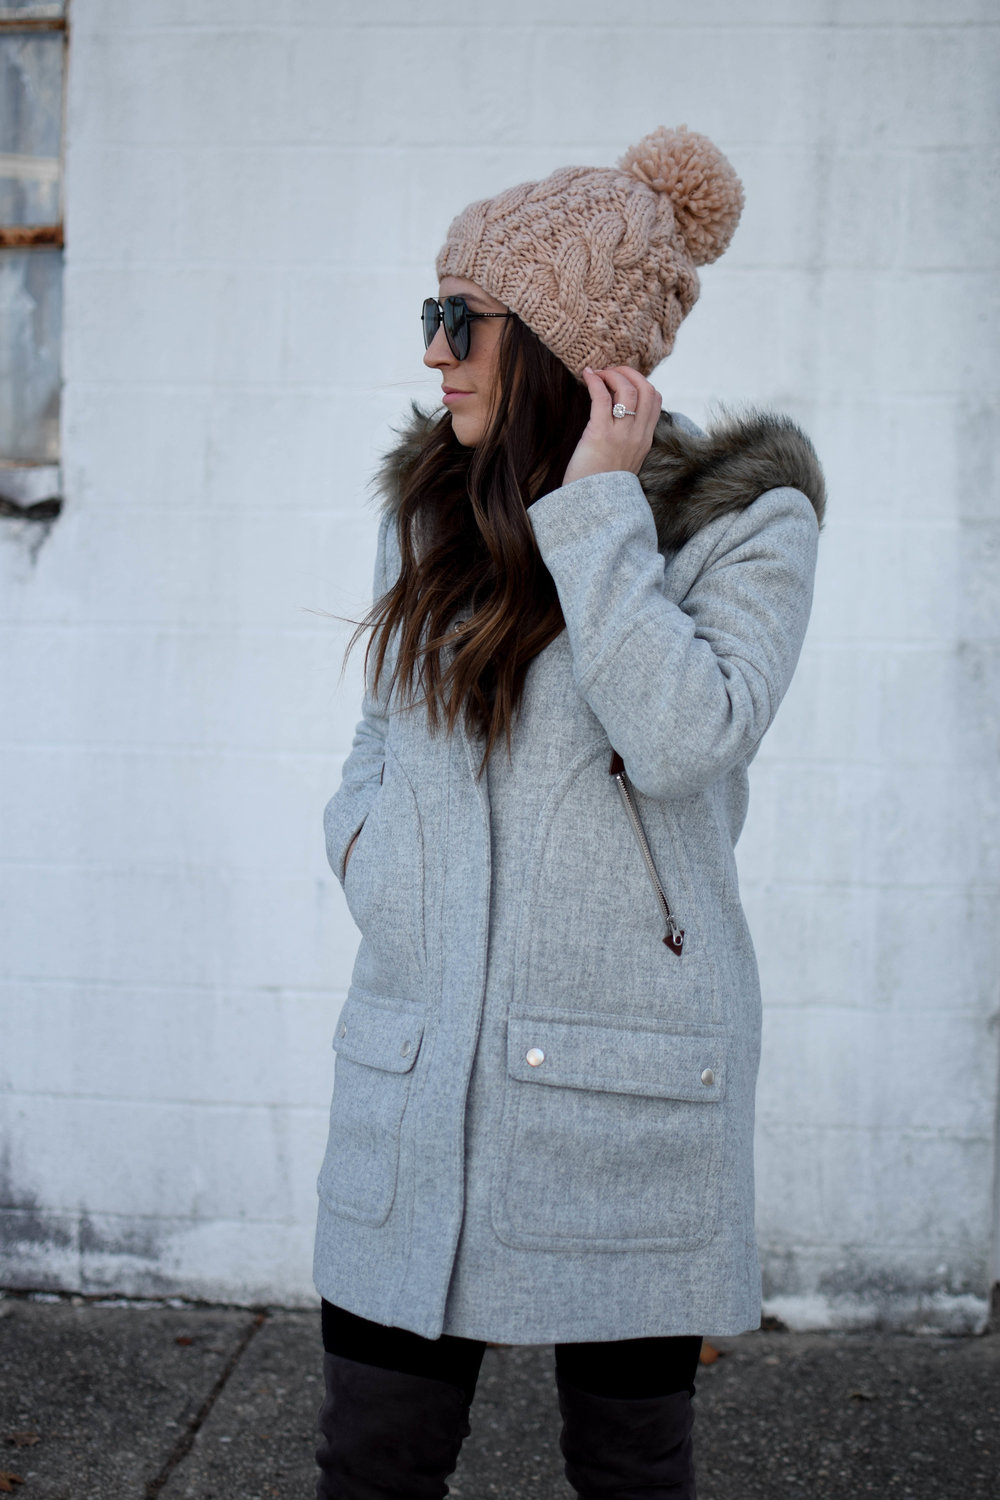 Weekend Sales + Free Shipping Day | Pine Barren Beauty | winter fashion, winter outfit idea, winter outfit inspiration, cozy sweater, sweater weather, winer coat, jcrew coat, jcrew sale